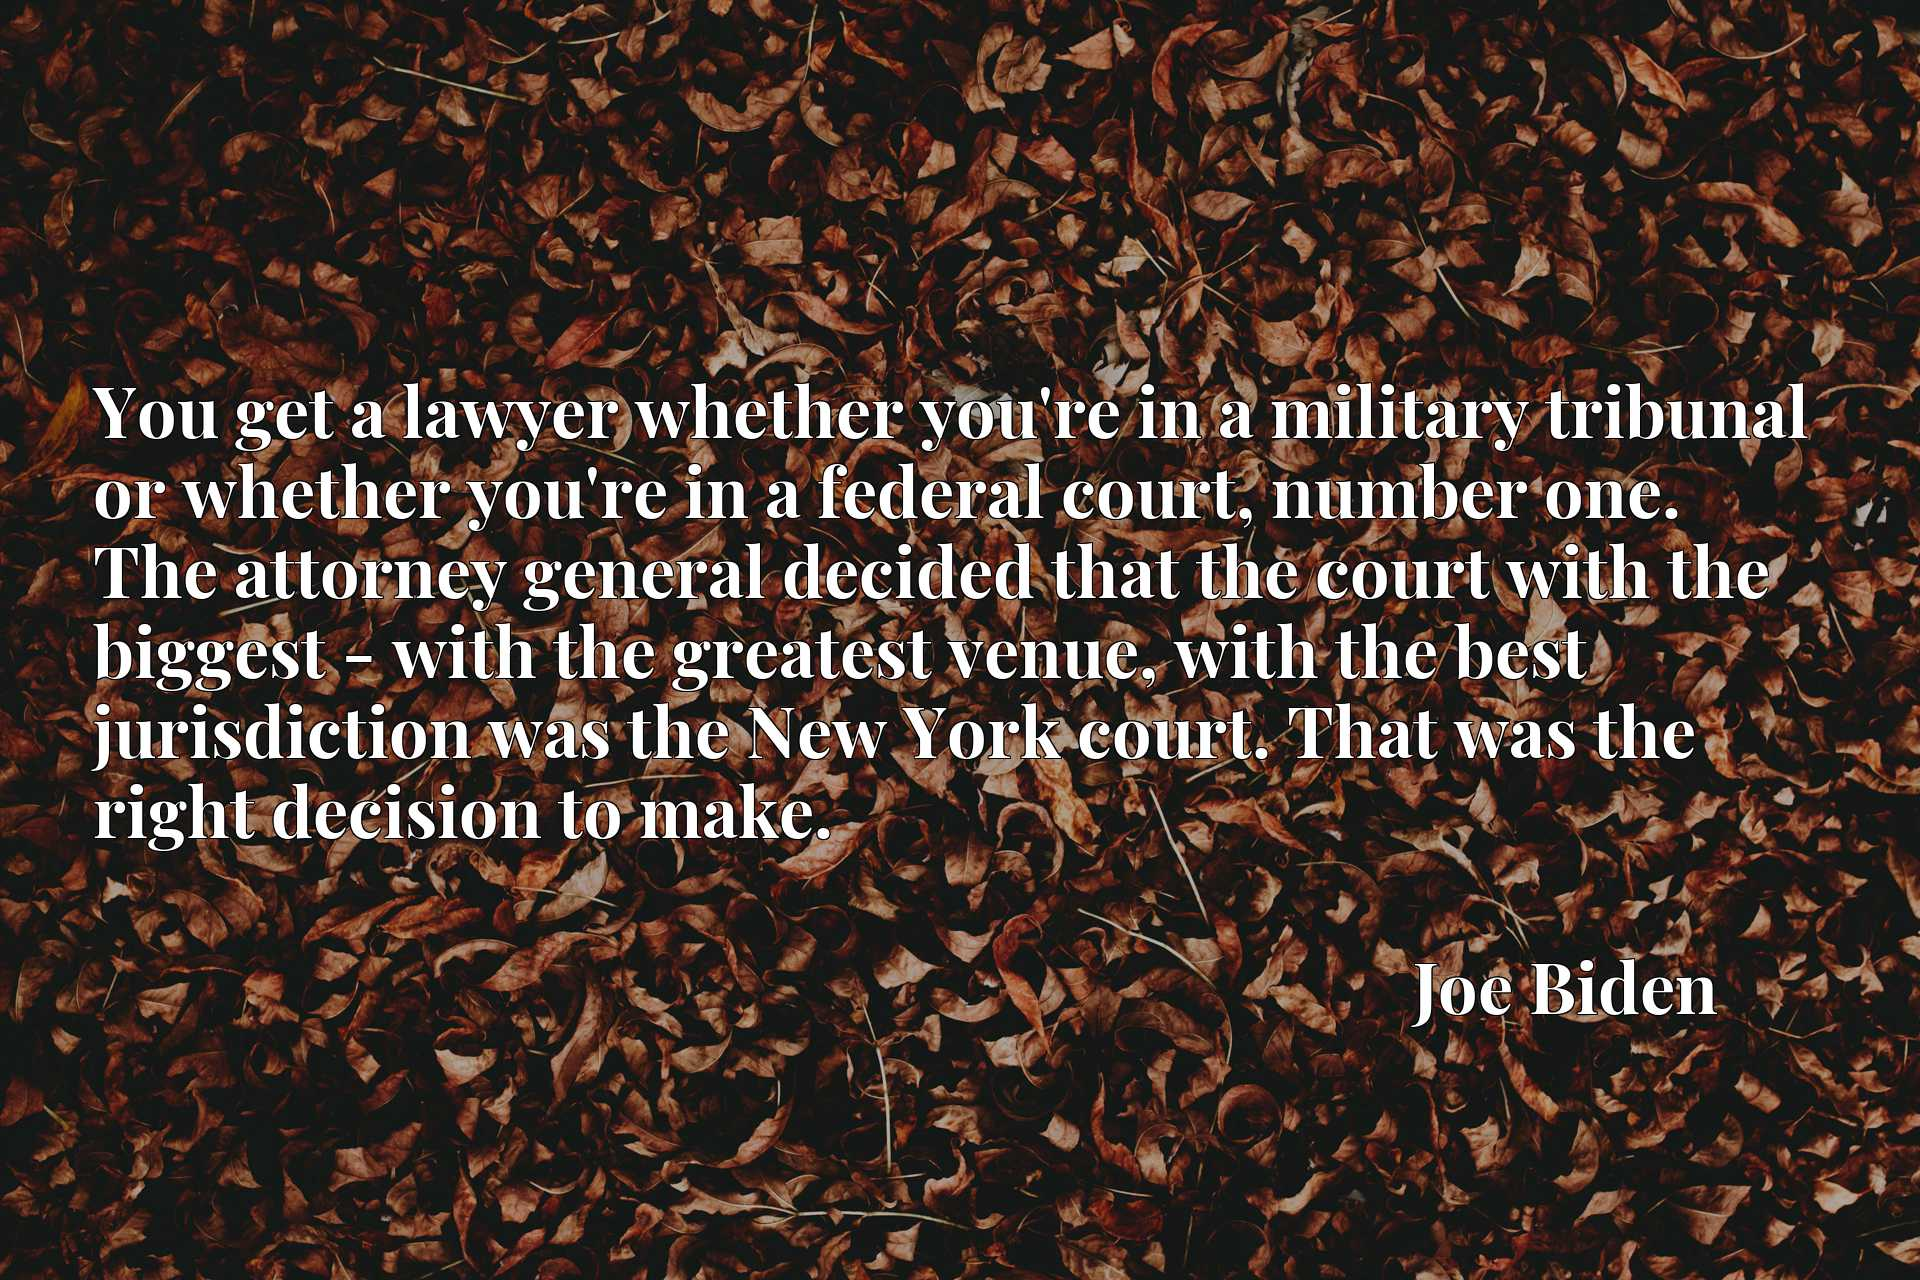 You get a lawyer whether you're in a military tribunal or whether you're in a federal court, number one. The attorney general decided that the court with the biggest - with the greatest venue, with the best jurisdiction was the New York court. That was the right decision to make.